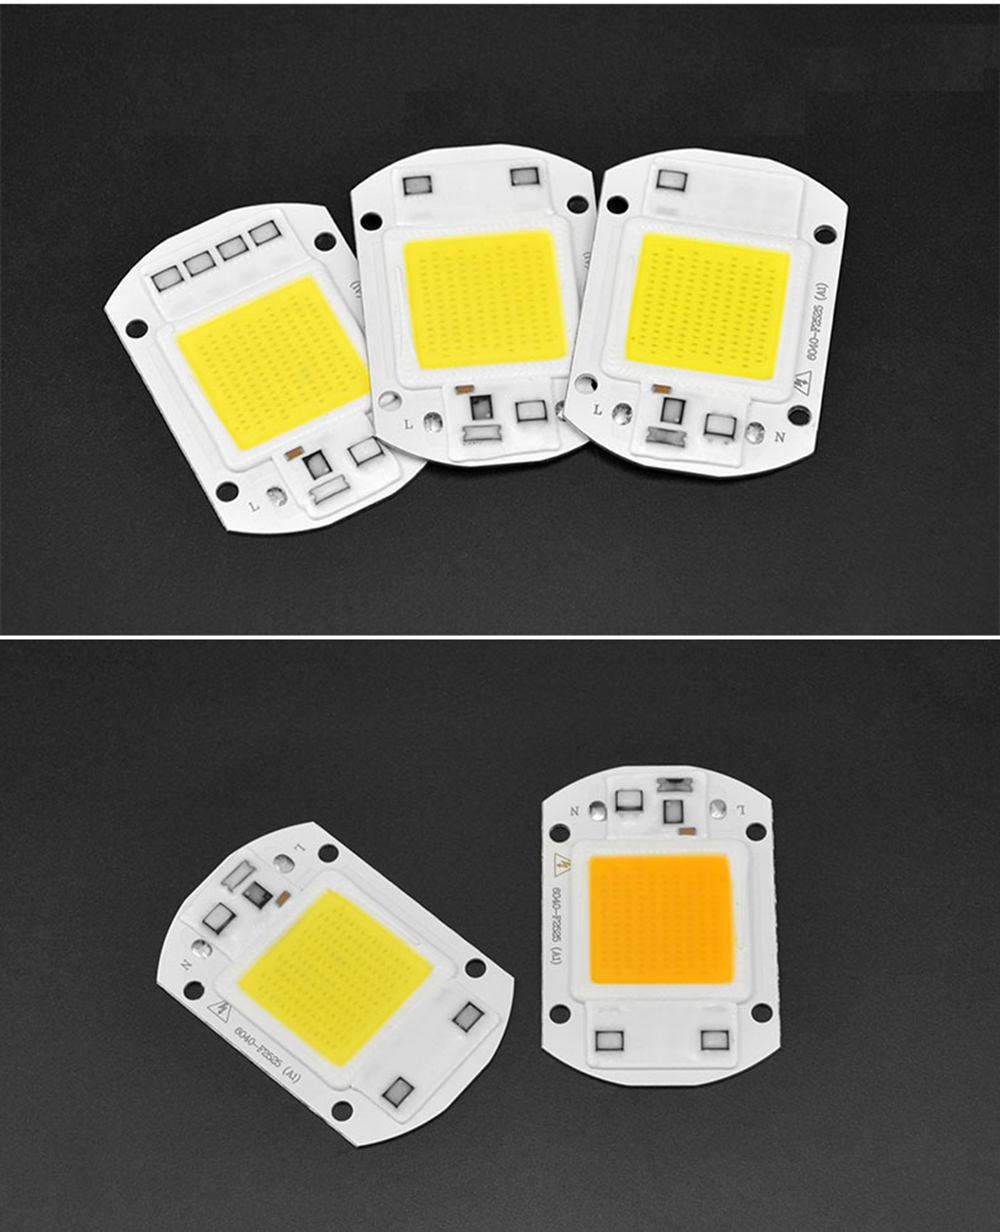 20W 30W 50W White / Warm White LED COB Light Chip with Lens for DIY Floodlight AC110V / 220V